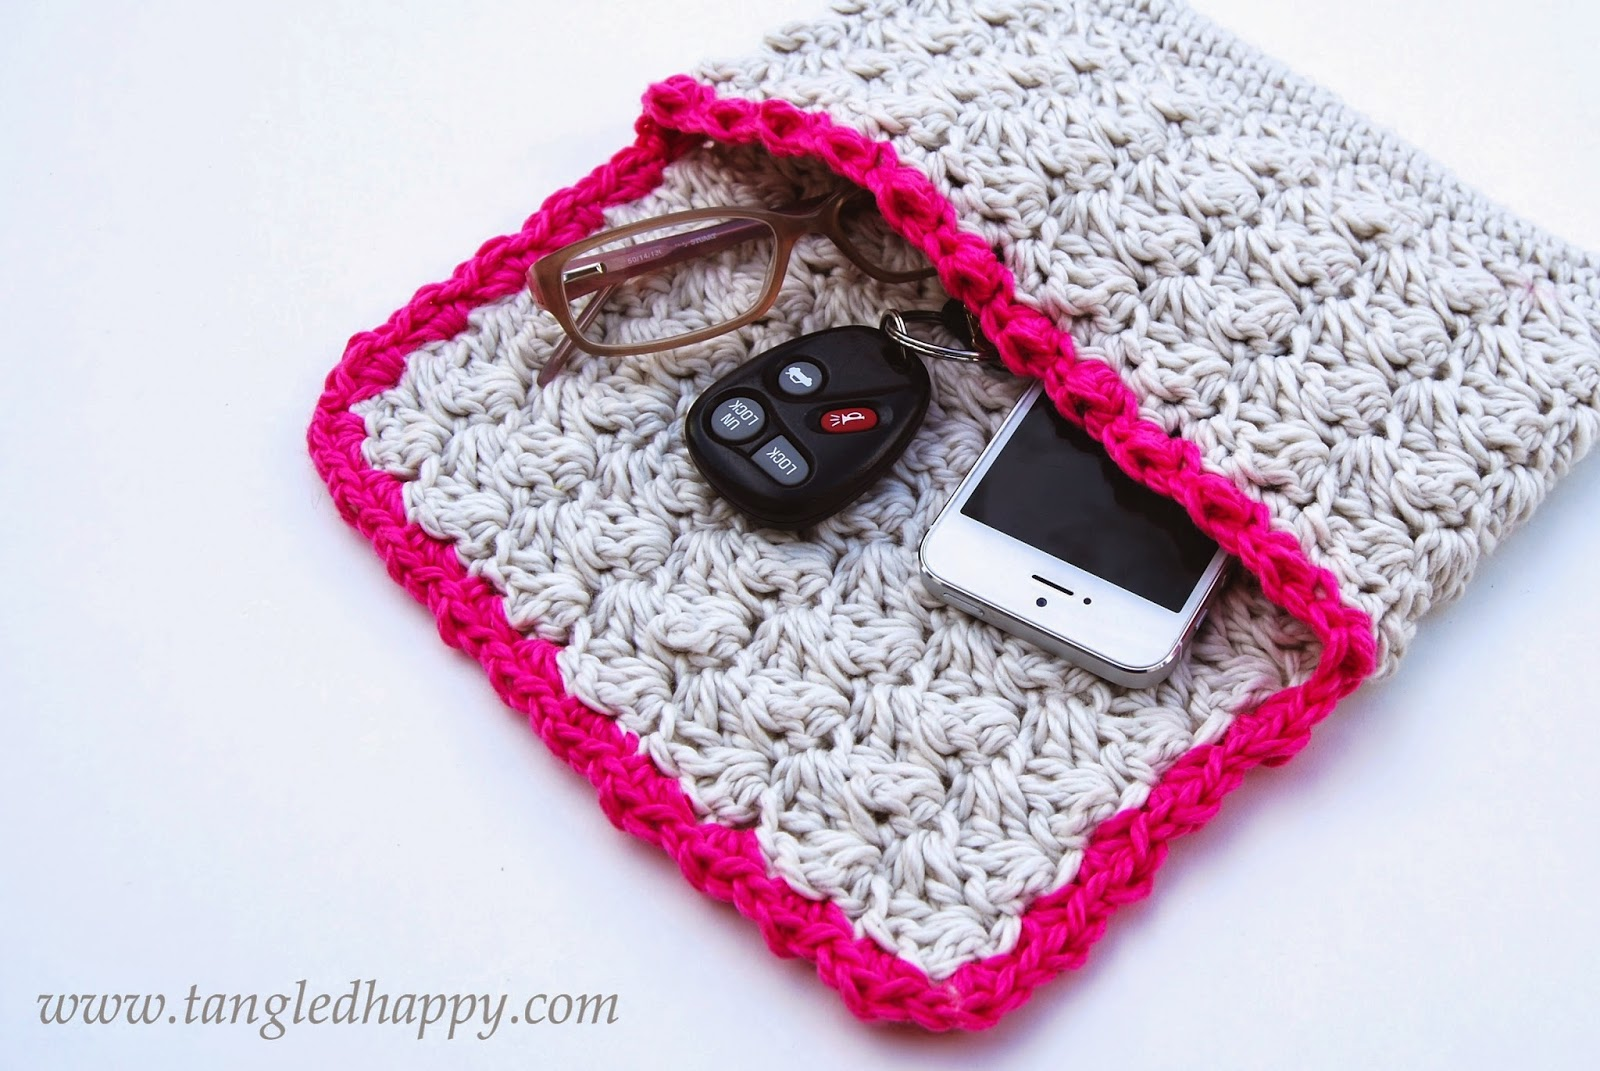 ... happy: DIY Anthropologie Inspired Summer Clutch {Free Crochet Pattern